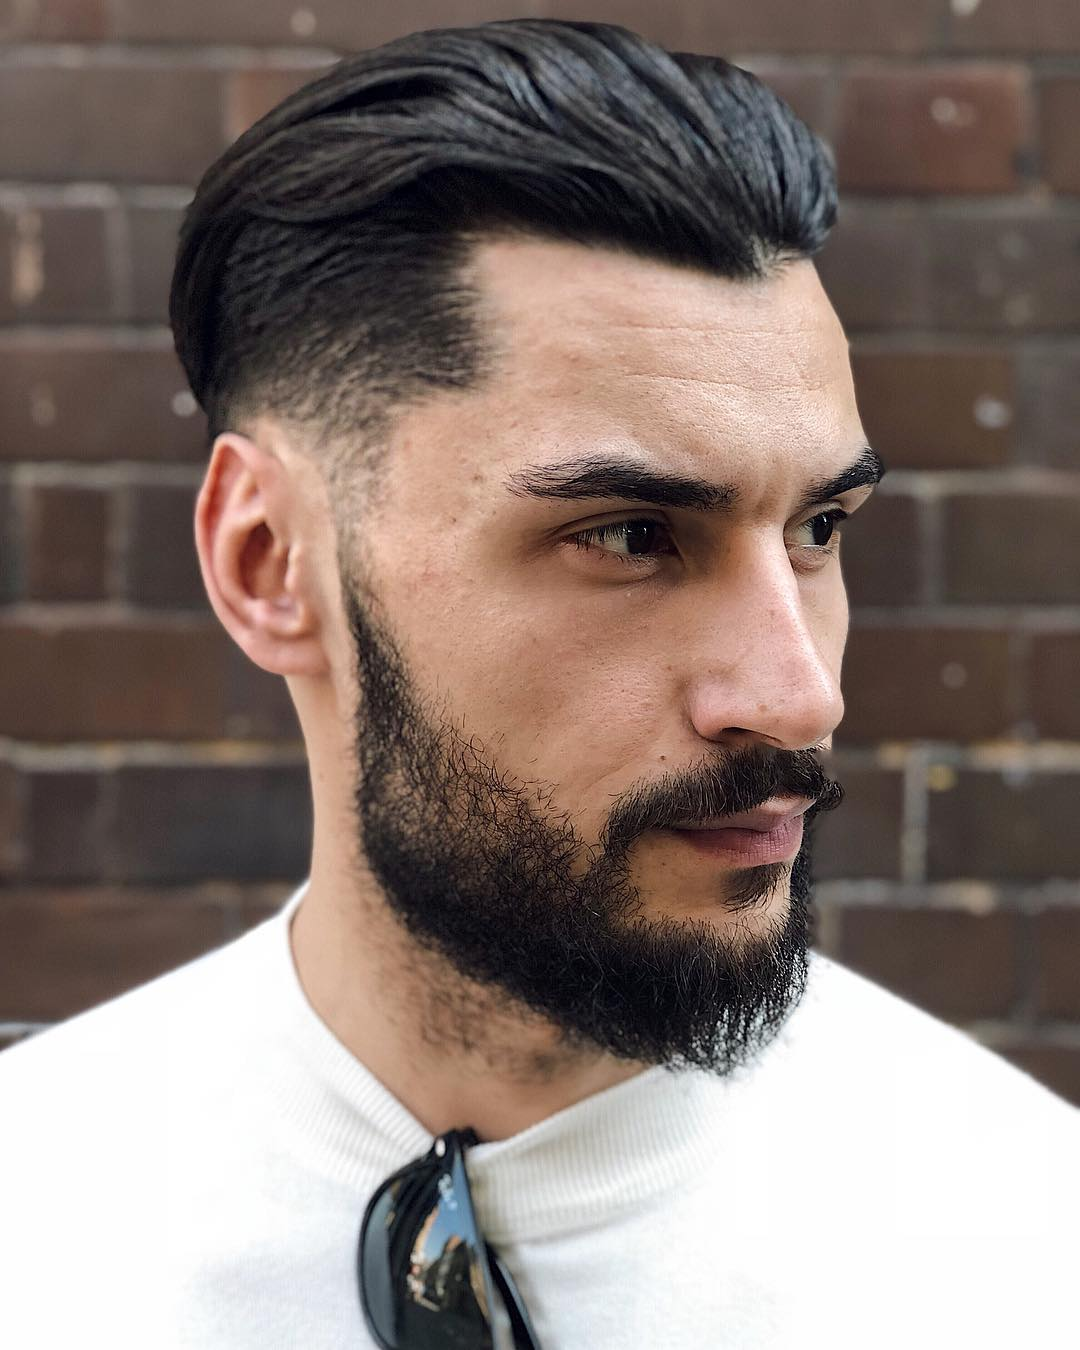 Taper + Slicked Back Undercut